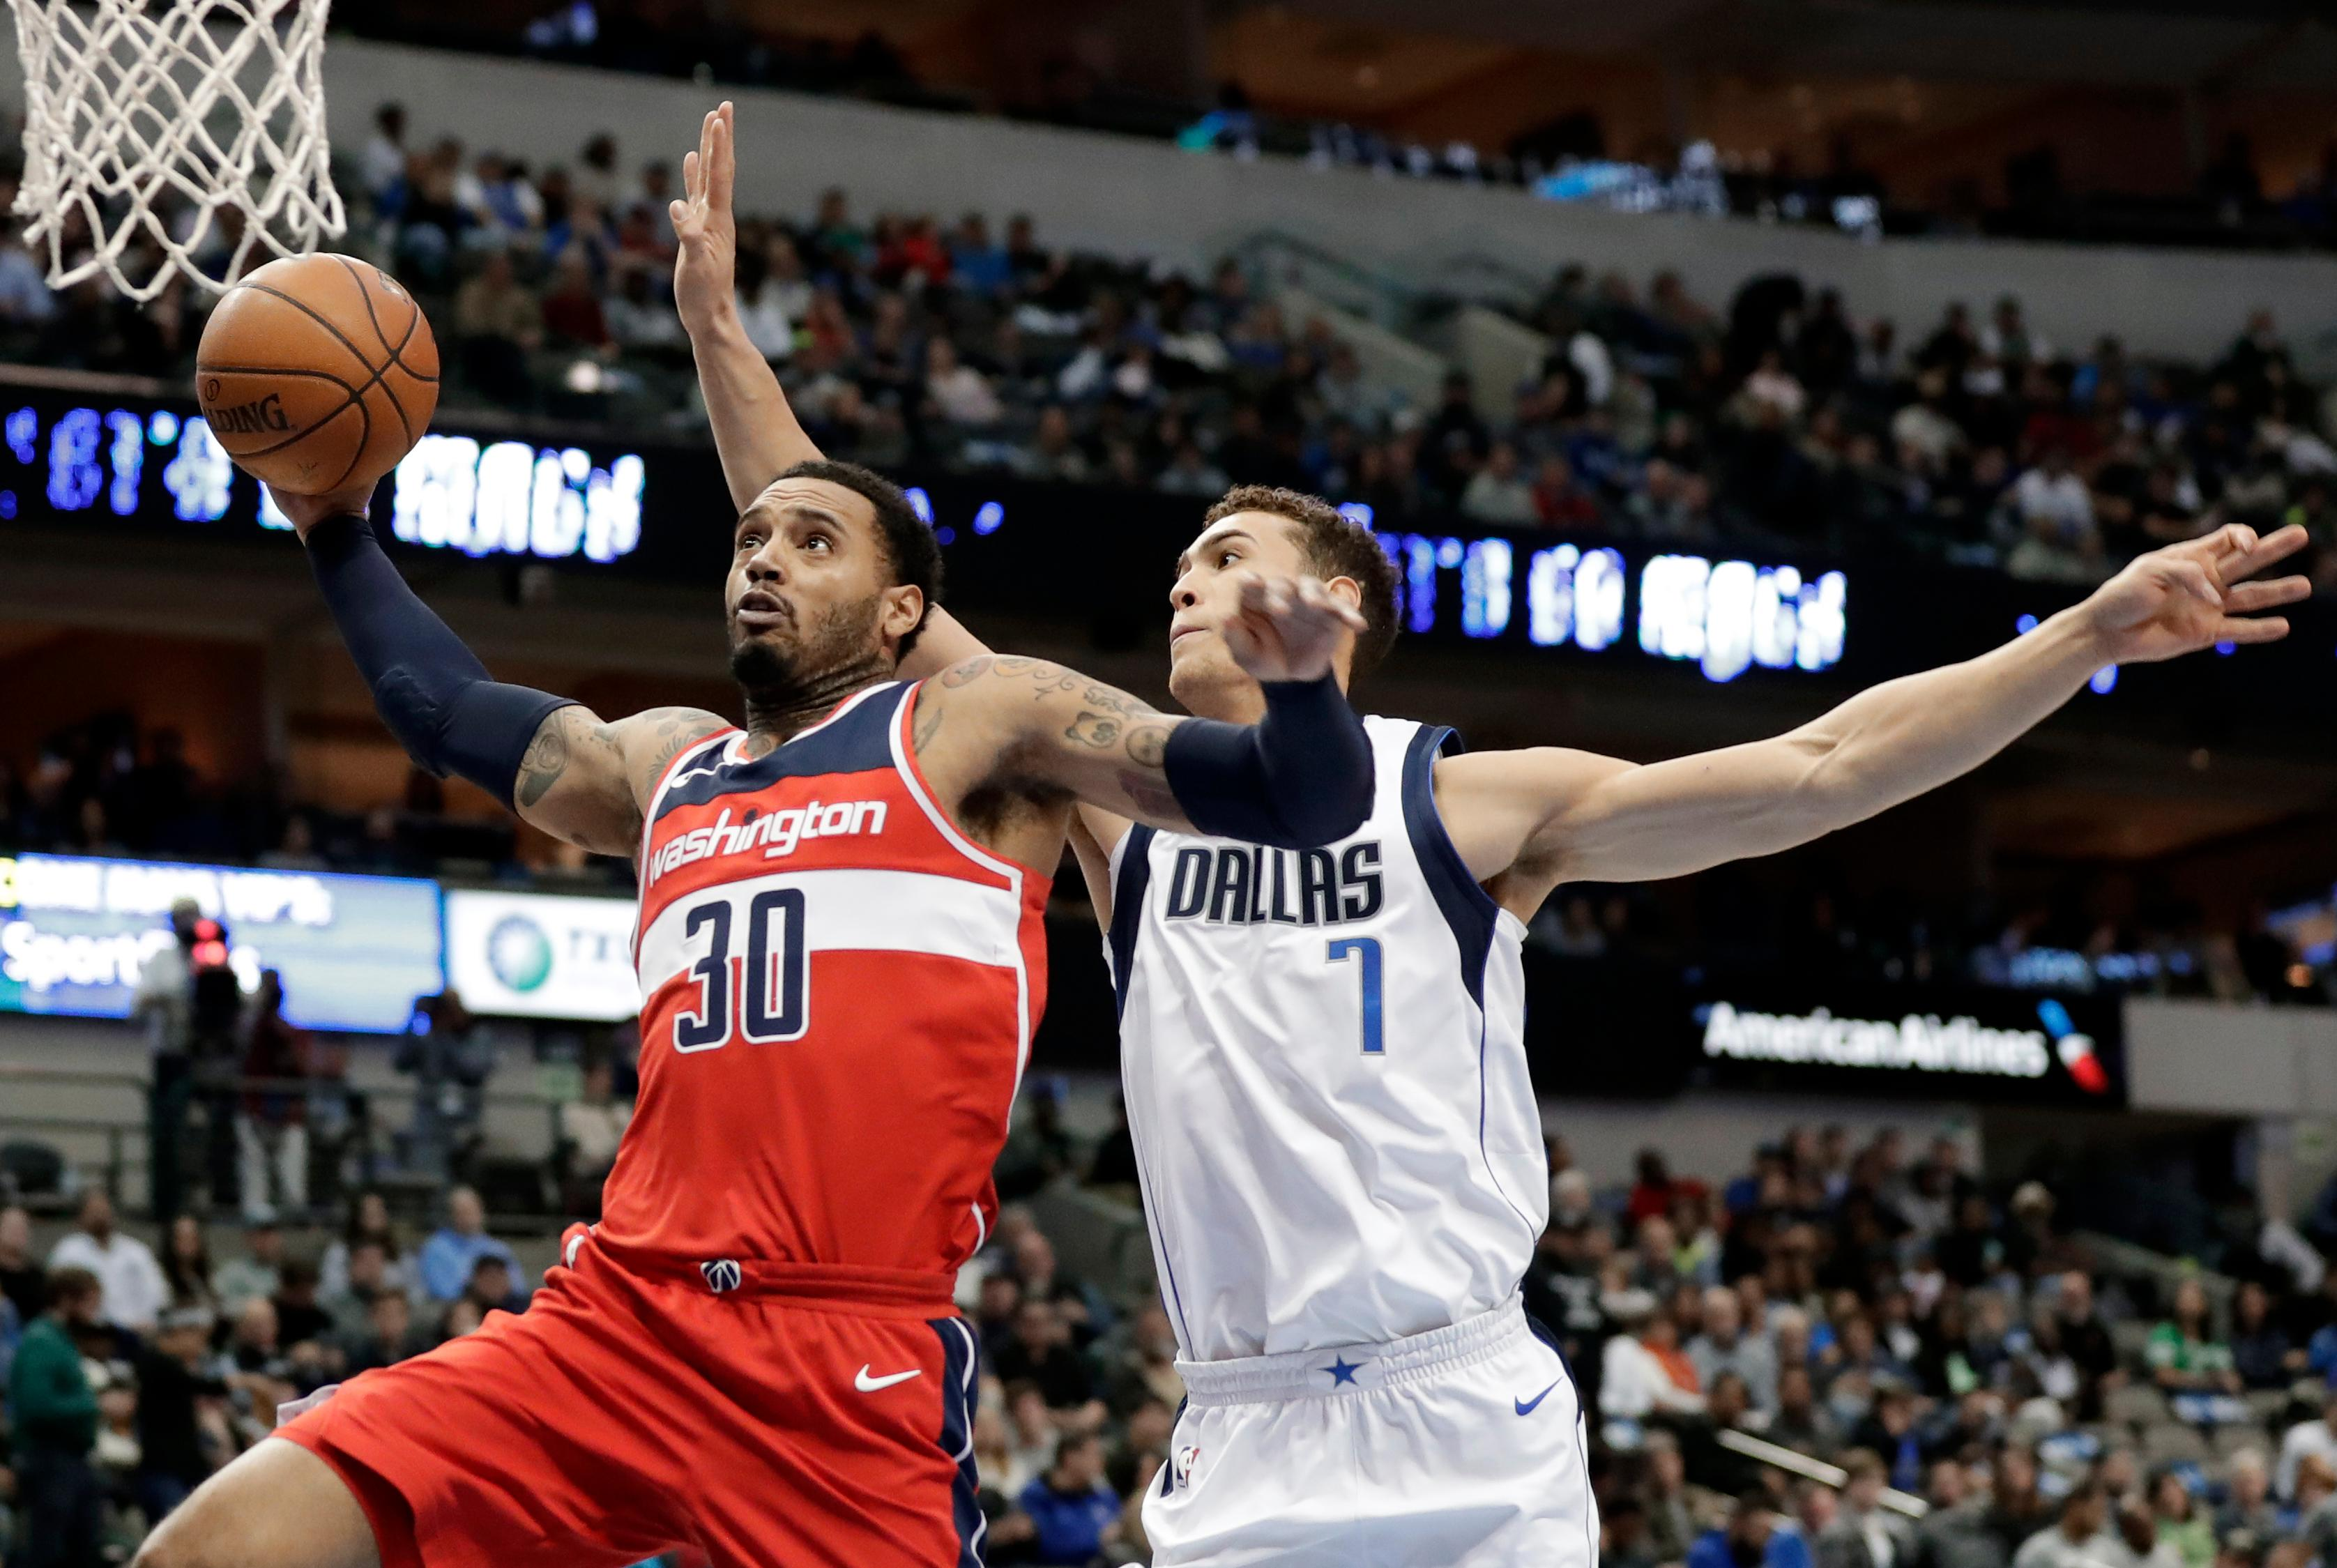 Washington Wizards forward Mike Scott (30) goes up for a shot as Dallas Mavericks' Dwight Powell (7) defends in the second half of an NBA basketball game, Monday, Jan. 22, 2018, in Dallas. (AP Photo/Tony Gutierrez)